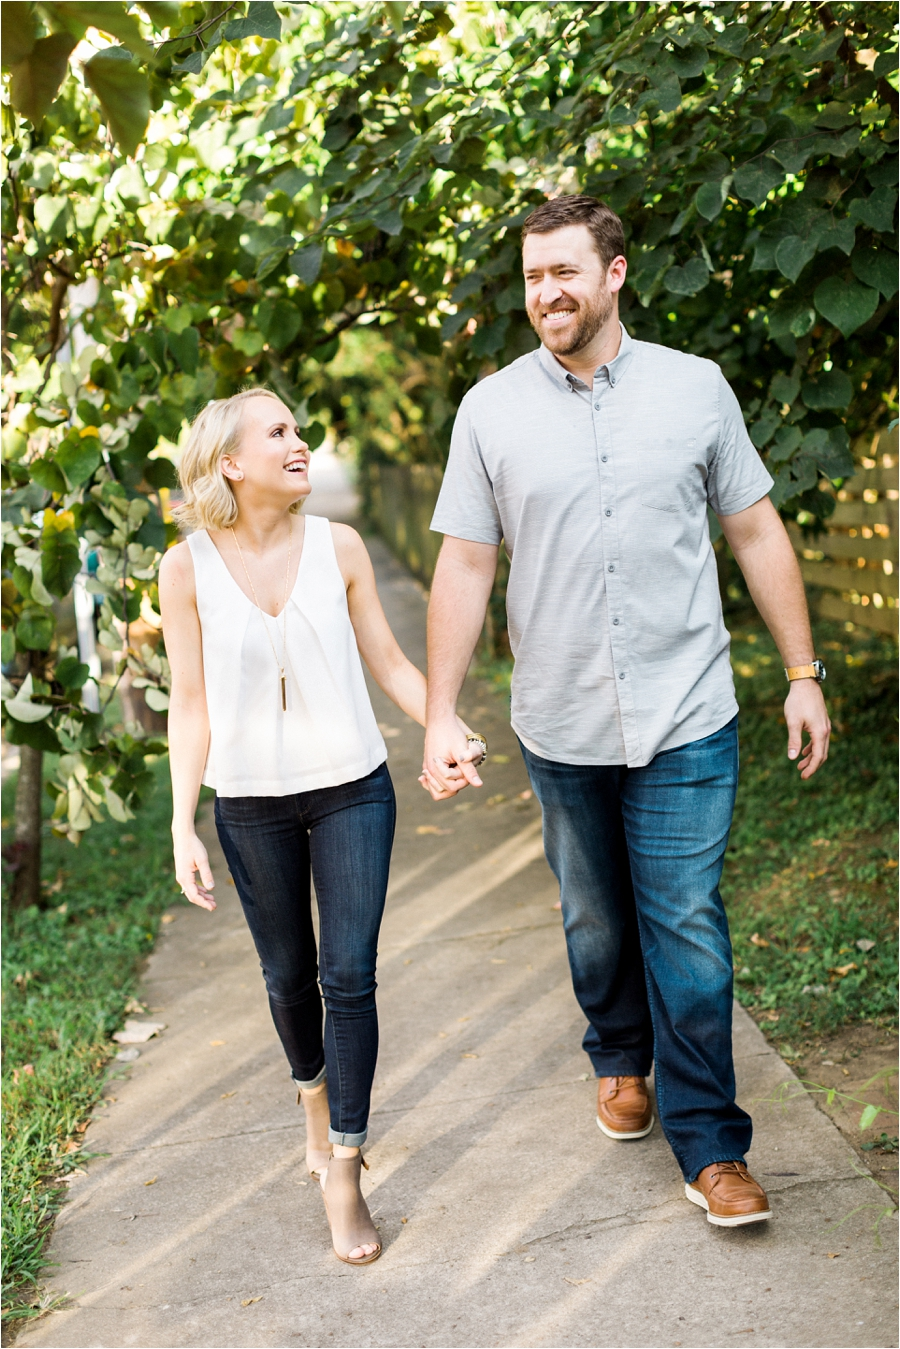 nashvile-outdoor-lifestyle-anniversary-session-by-charlottesville-film-photographer-amy-nicole-photography_0272